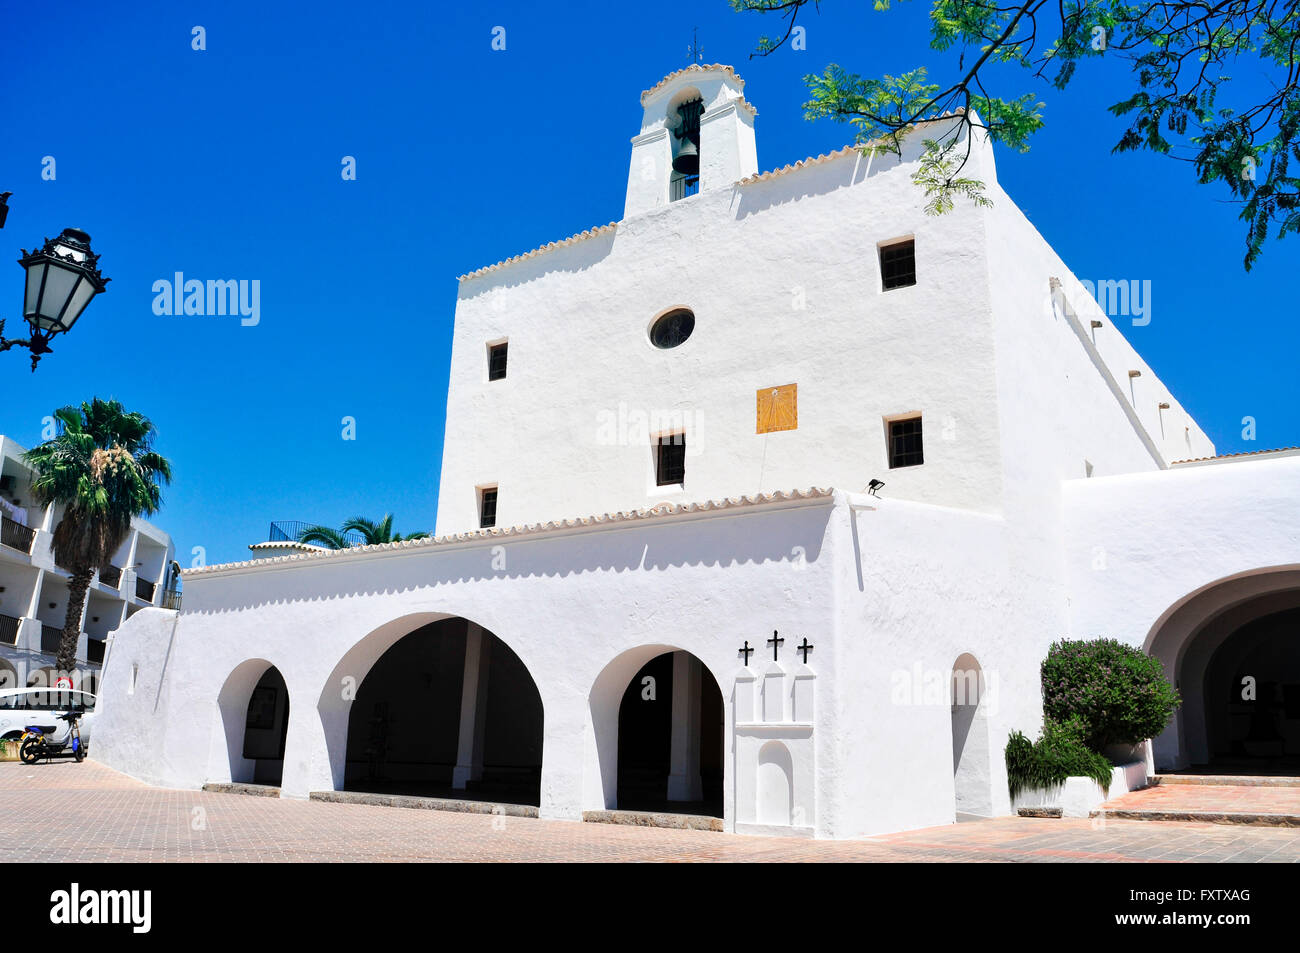 a view of the whitewashed facade of Sant Josep Church, built in 1727, in Sant Josep de Sa Talaia, in Ibiza Island, - Stock Image